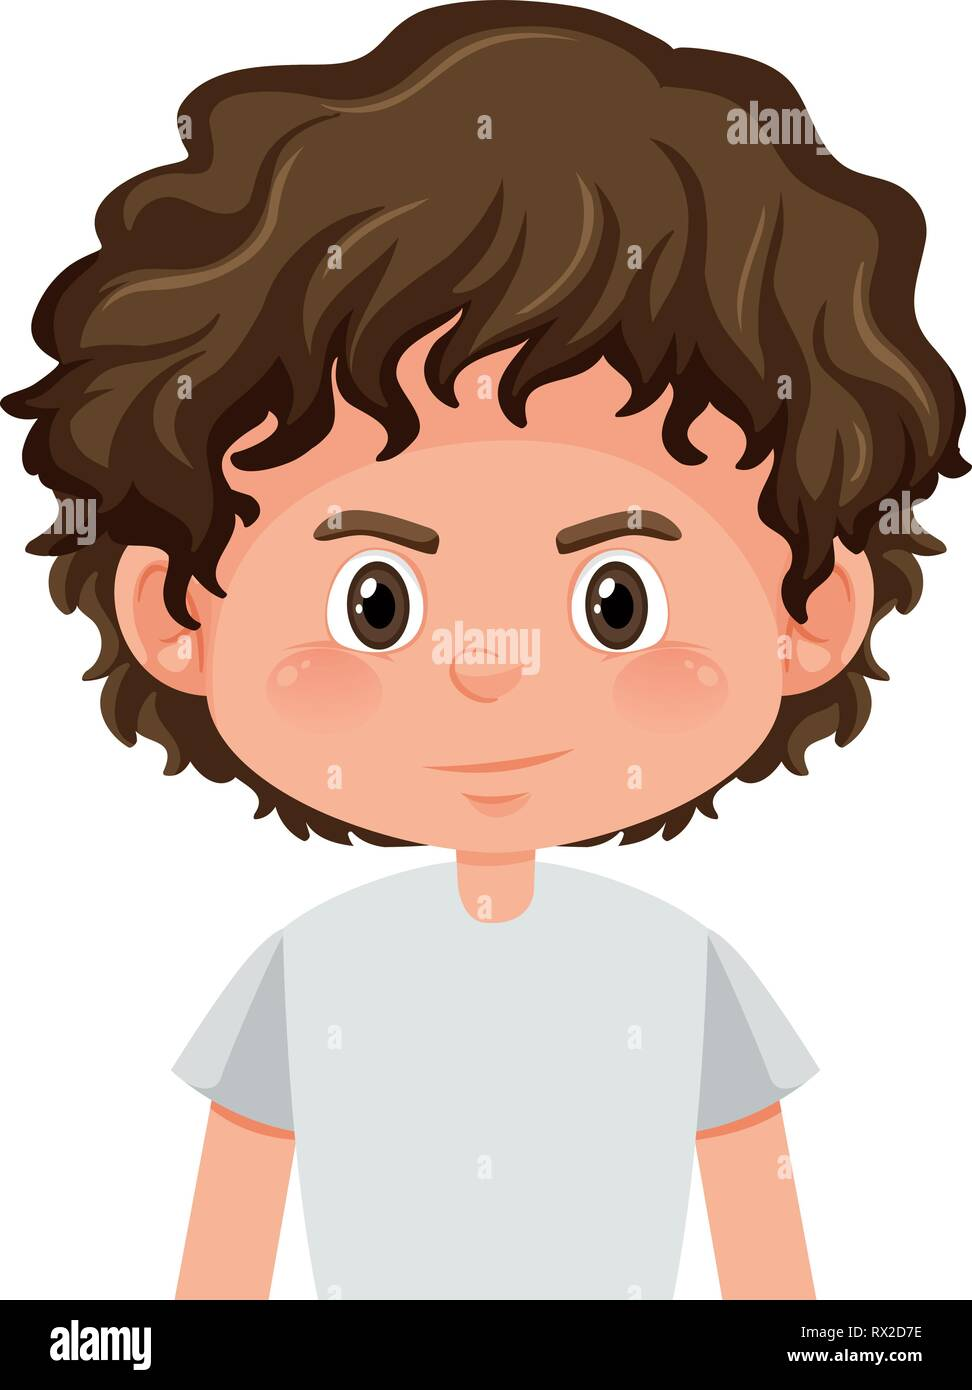 A Curly Hair Boy Character Illustration Stock Vector Image Art